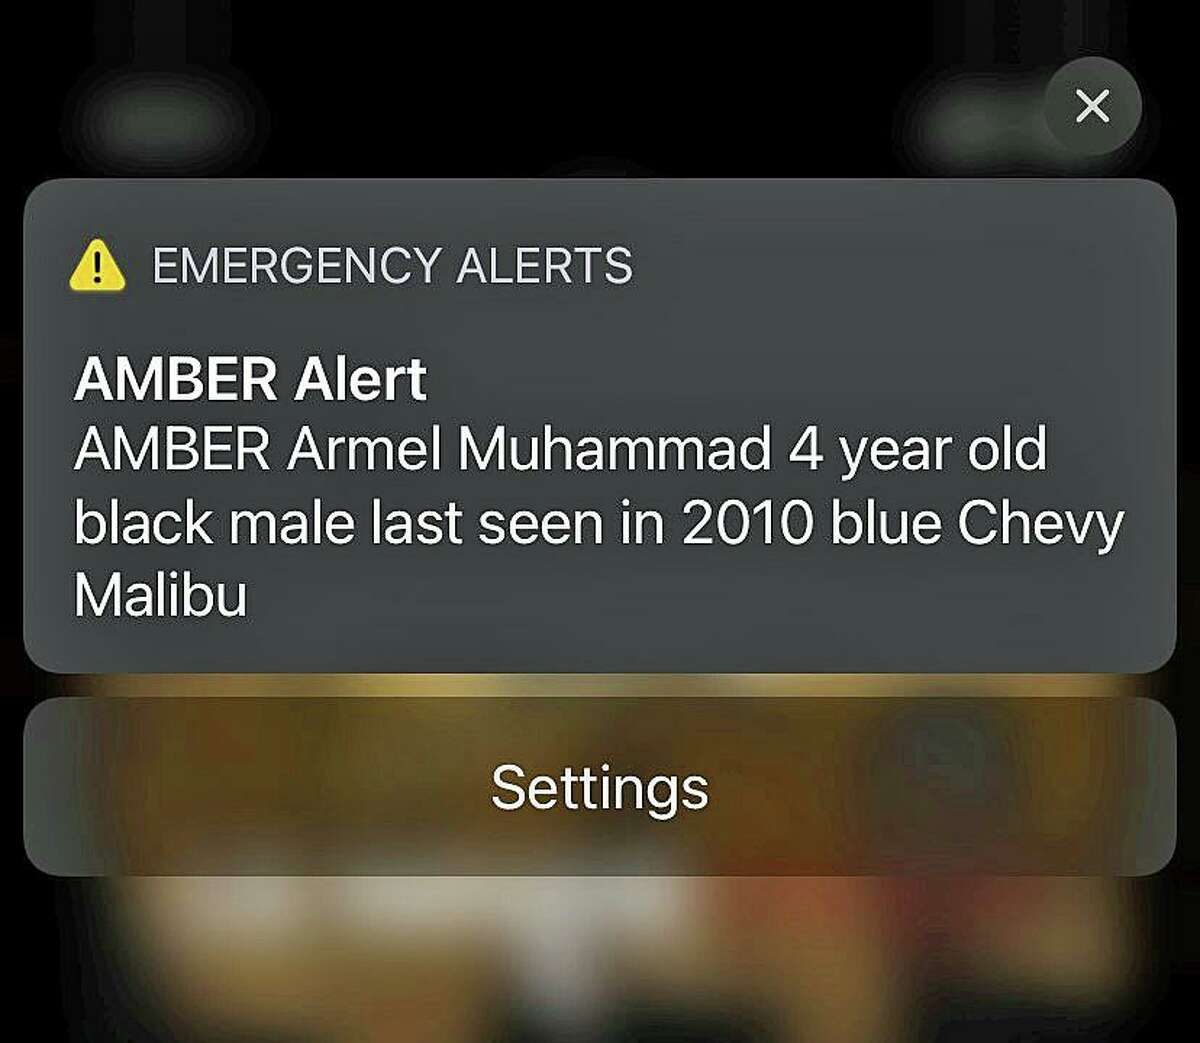 A screenshot of the Amber Alert issued in Connecticut on Tuesday, June 1, 2021. Authorities issued a correction on the boy's name as Armel Muhammed soon after.